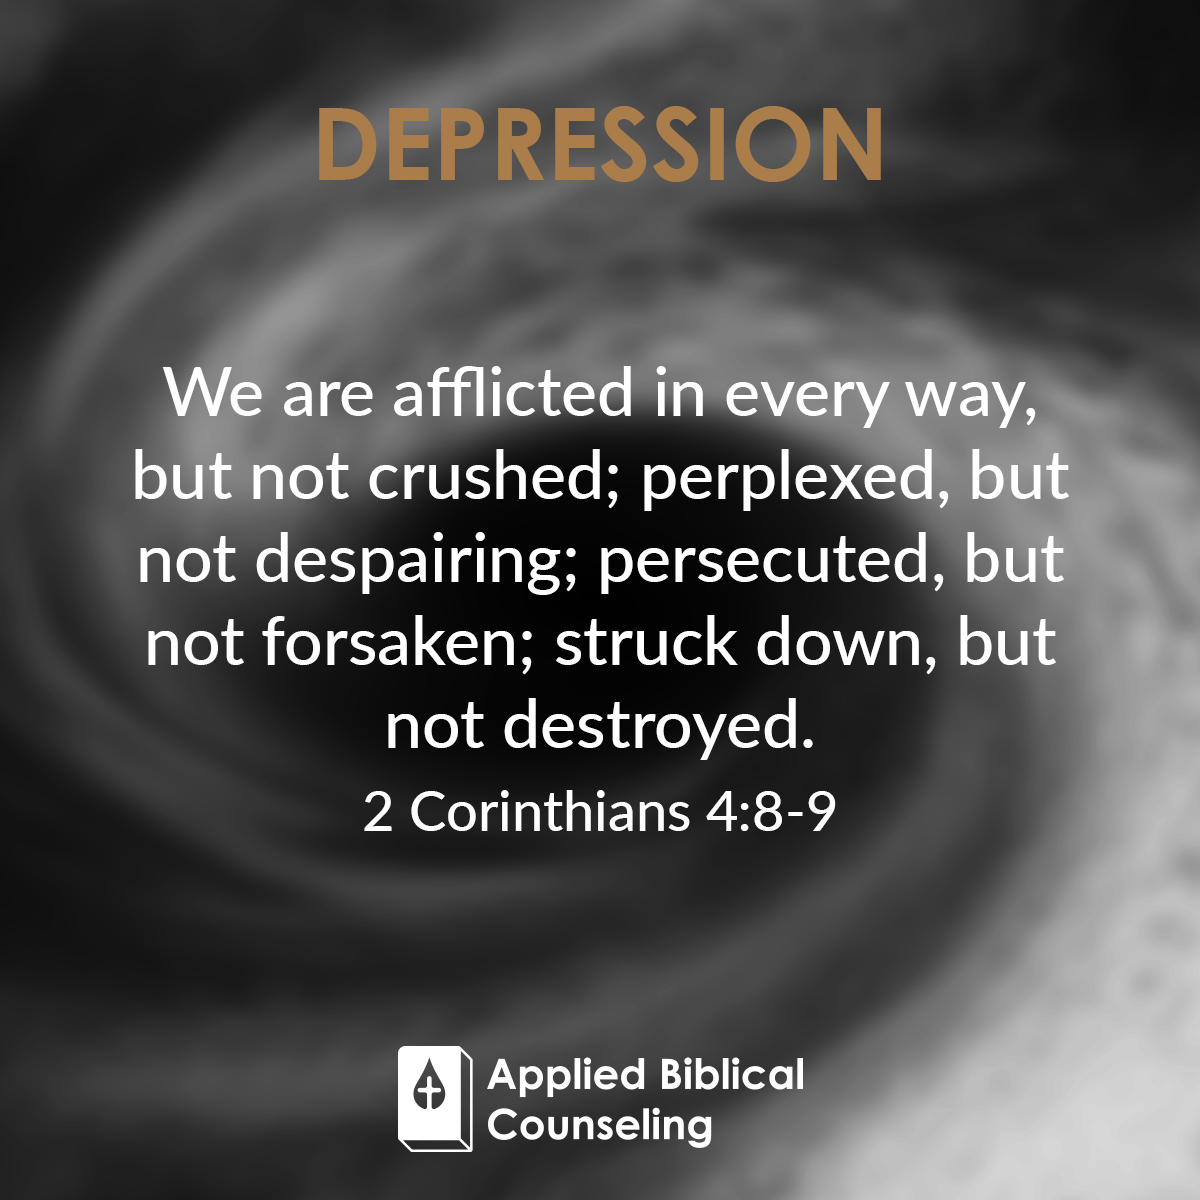 Applied Biblical Counseling Facebook w27 Depression 2